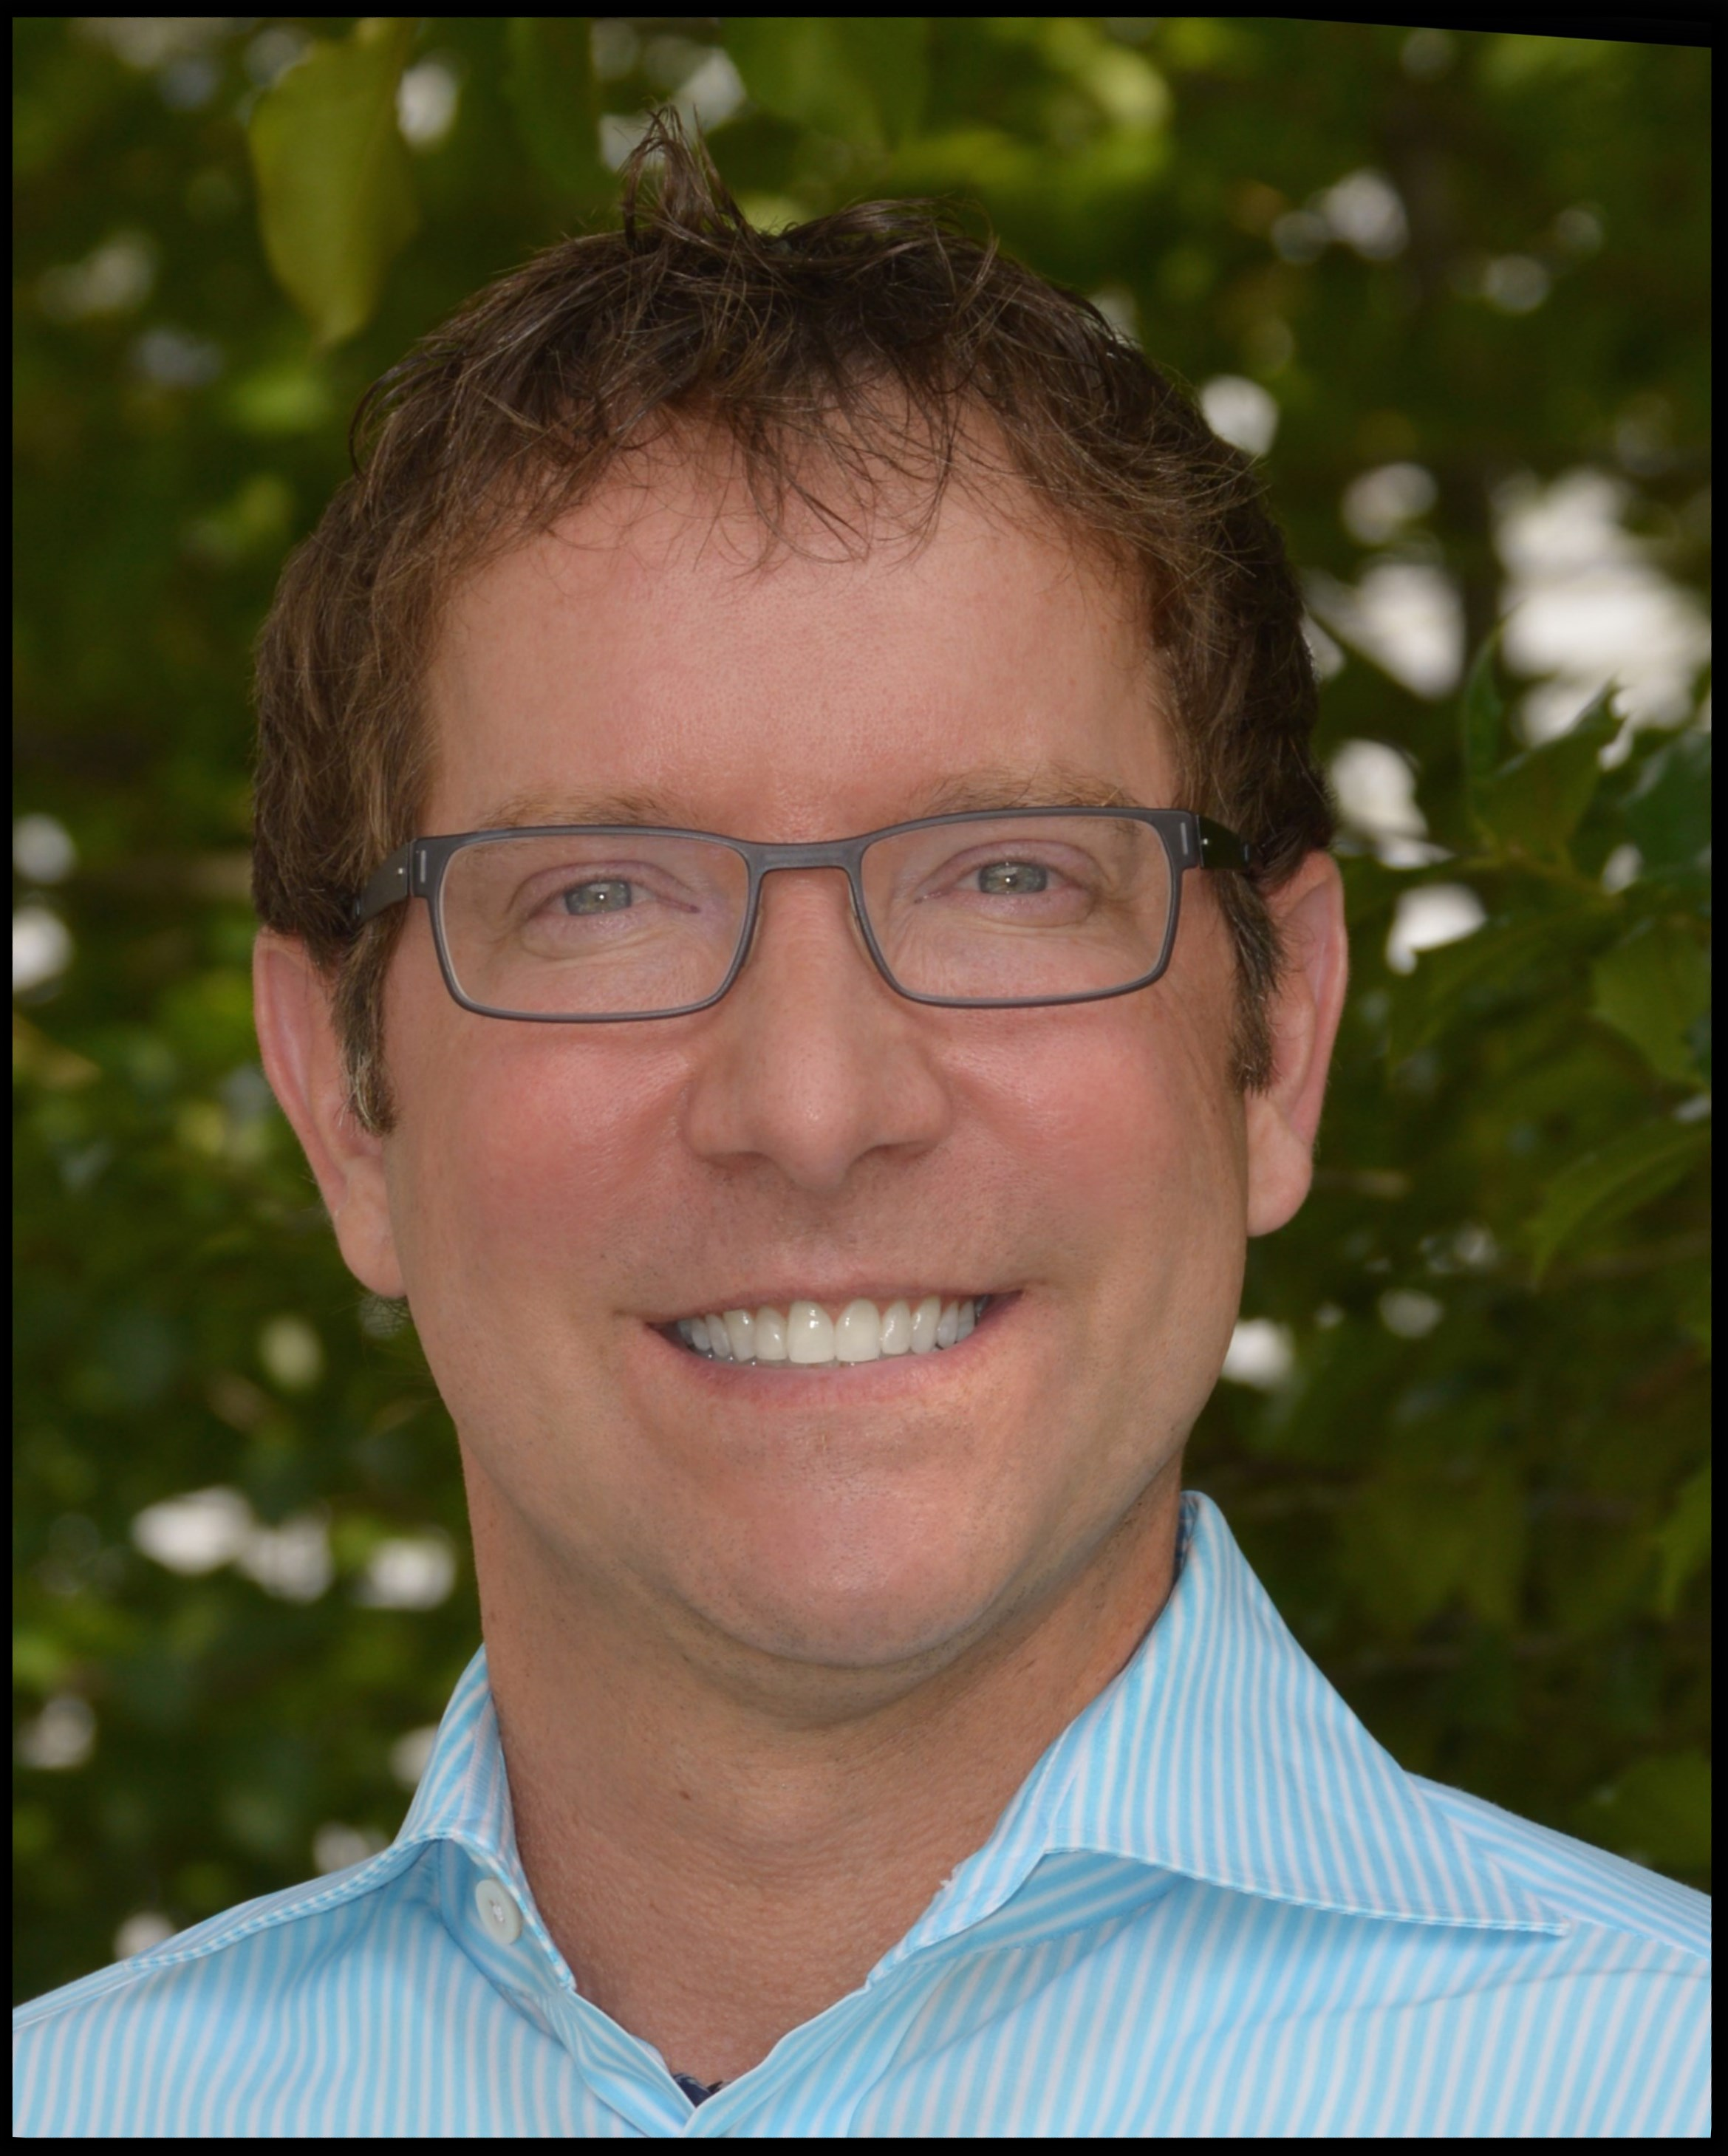 Gregory S. Coakley- Orthodontist, DDS, MS